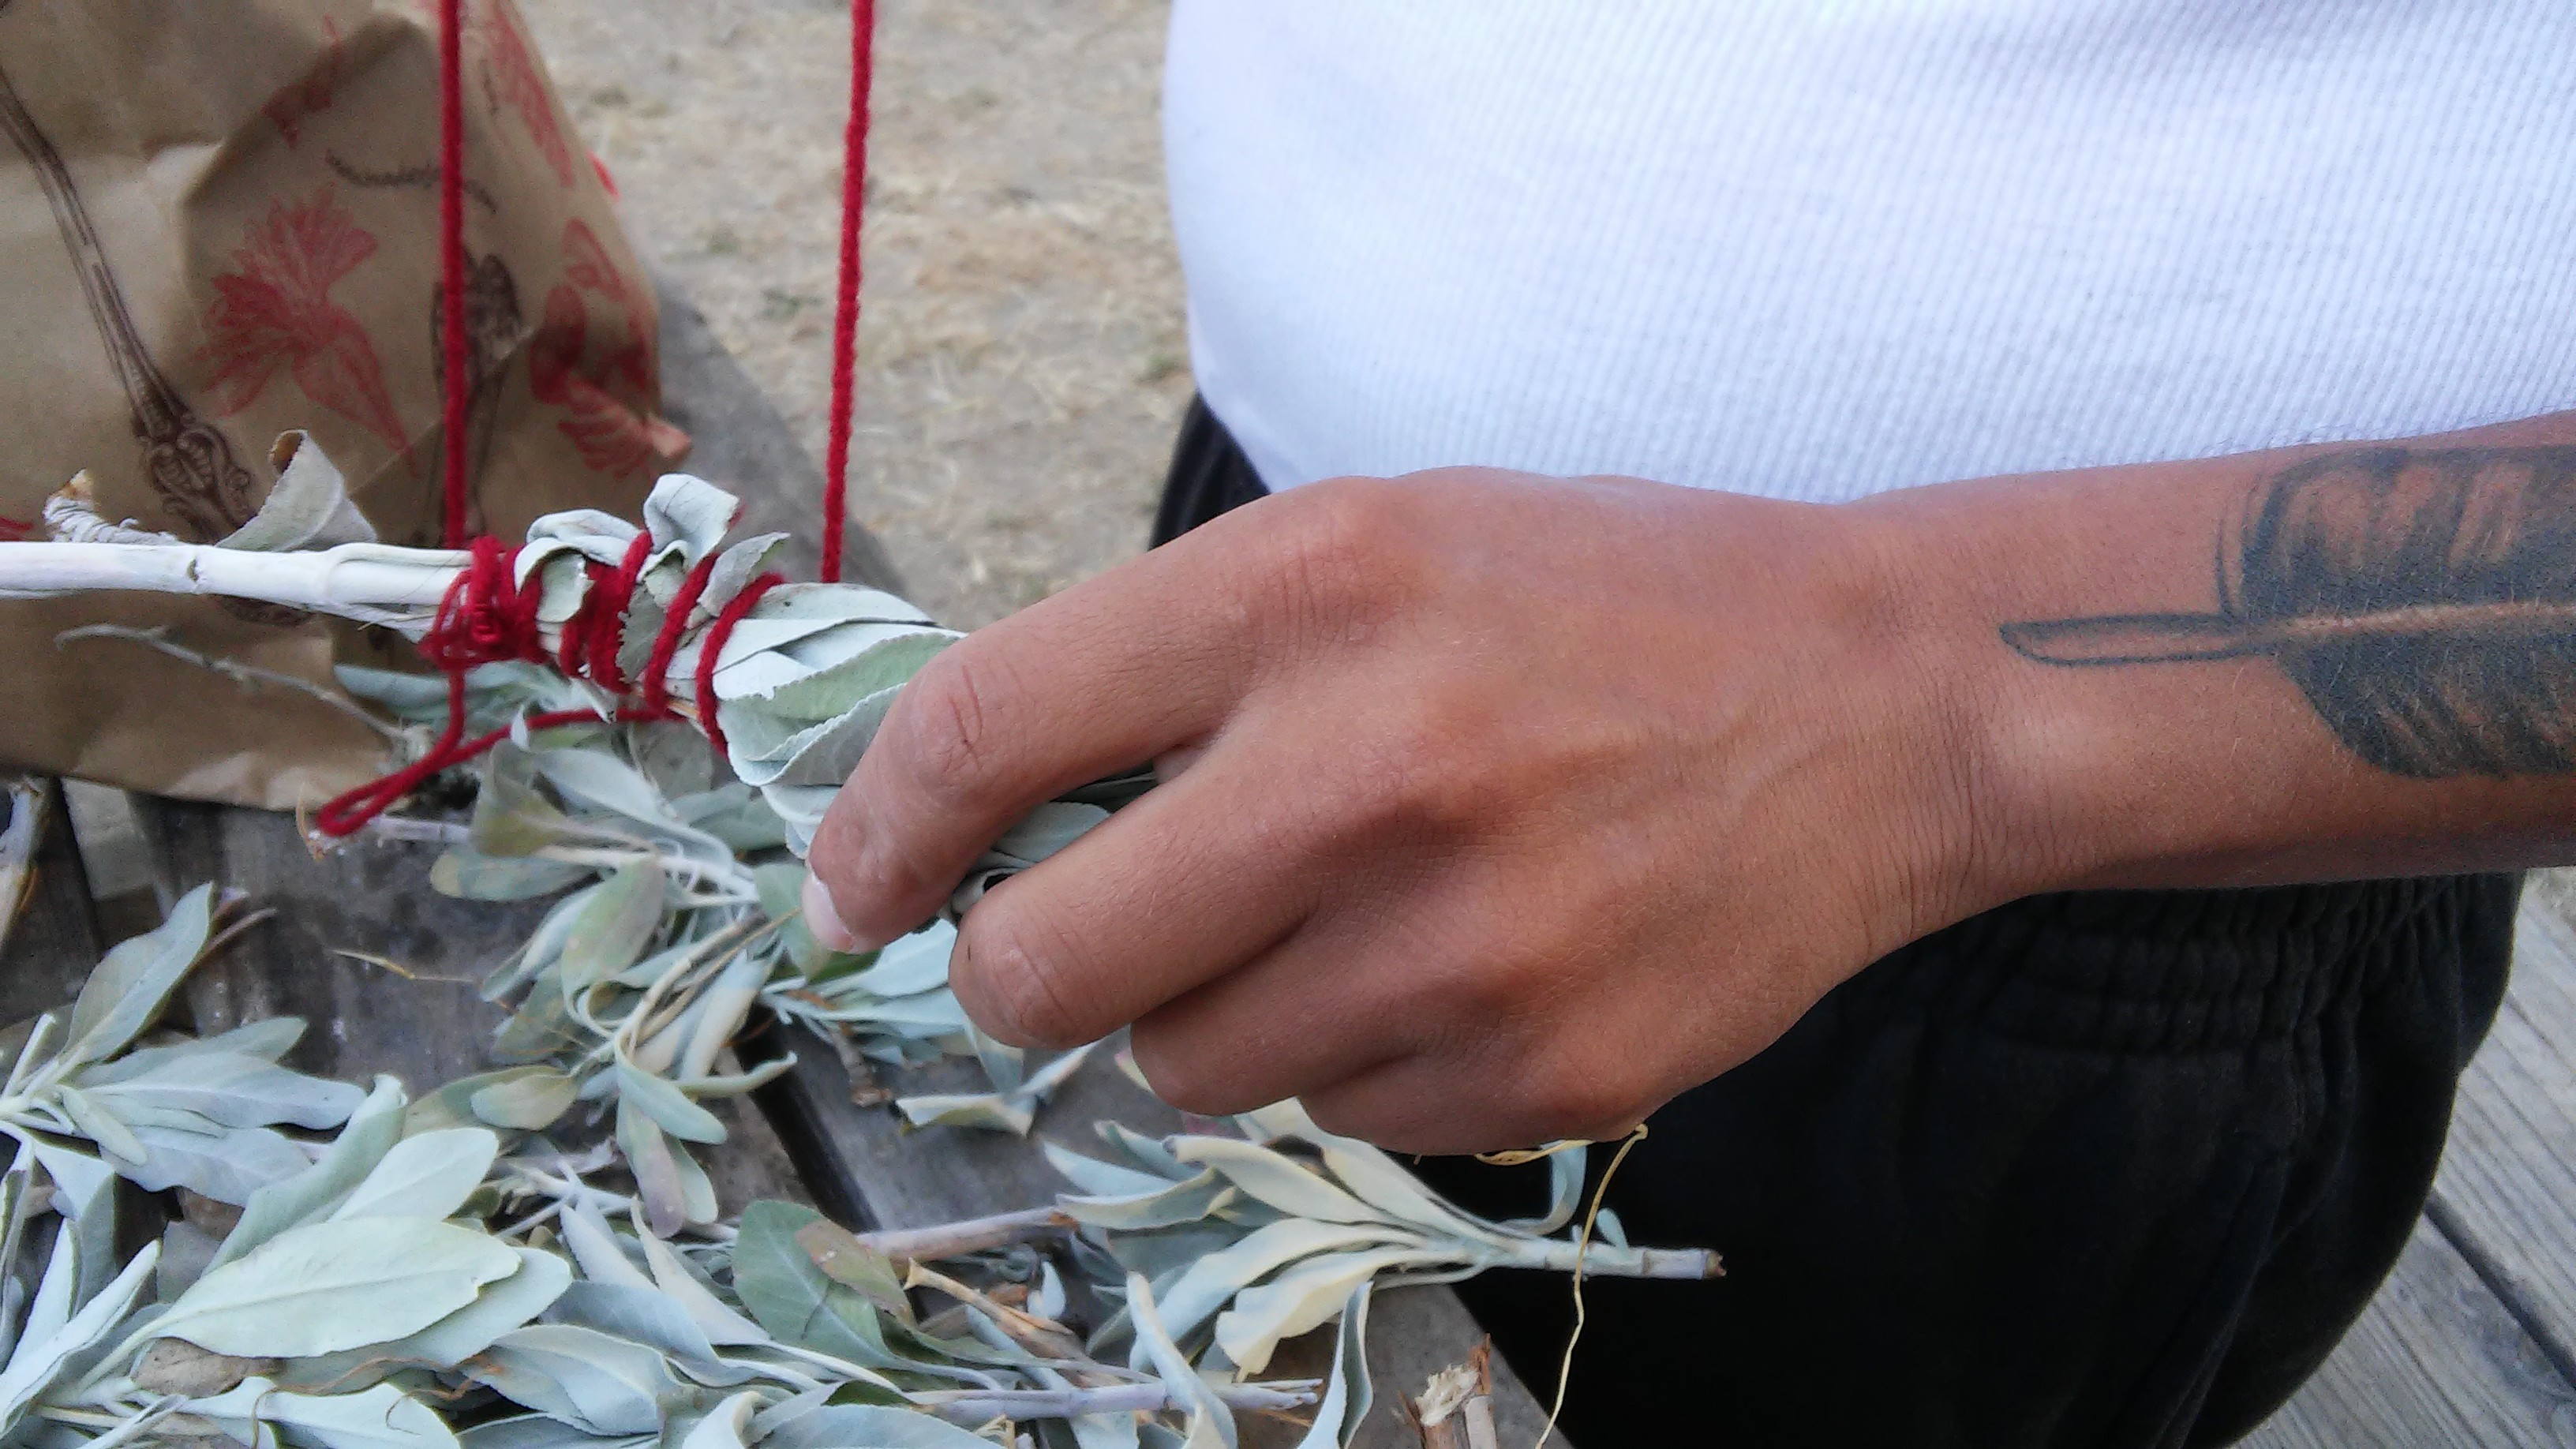 Native Steward Gabriel Pineda wraps white sage (Salvia apiana), gathered from the UC Santa Cruz Arboretum's Amah Mutsun Relearning garden, into smudge sticks for ceremonial use.